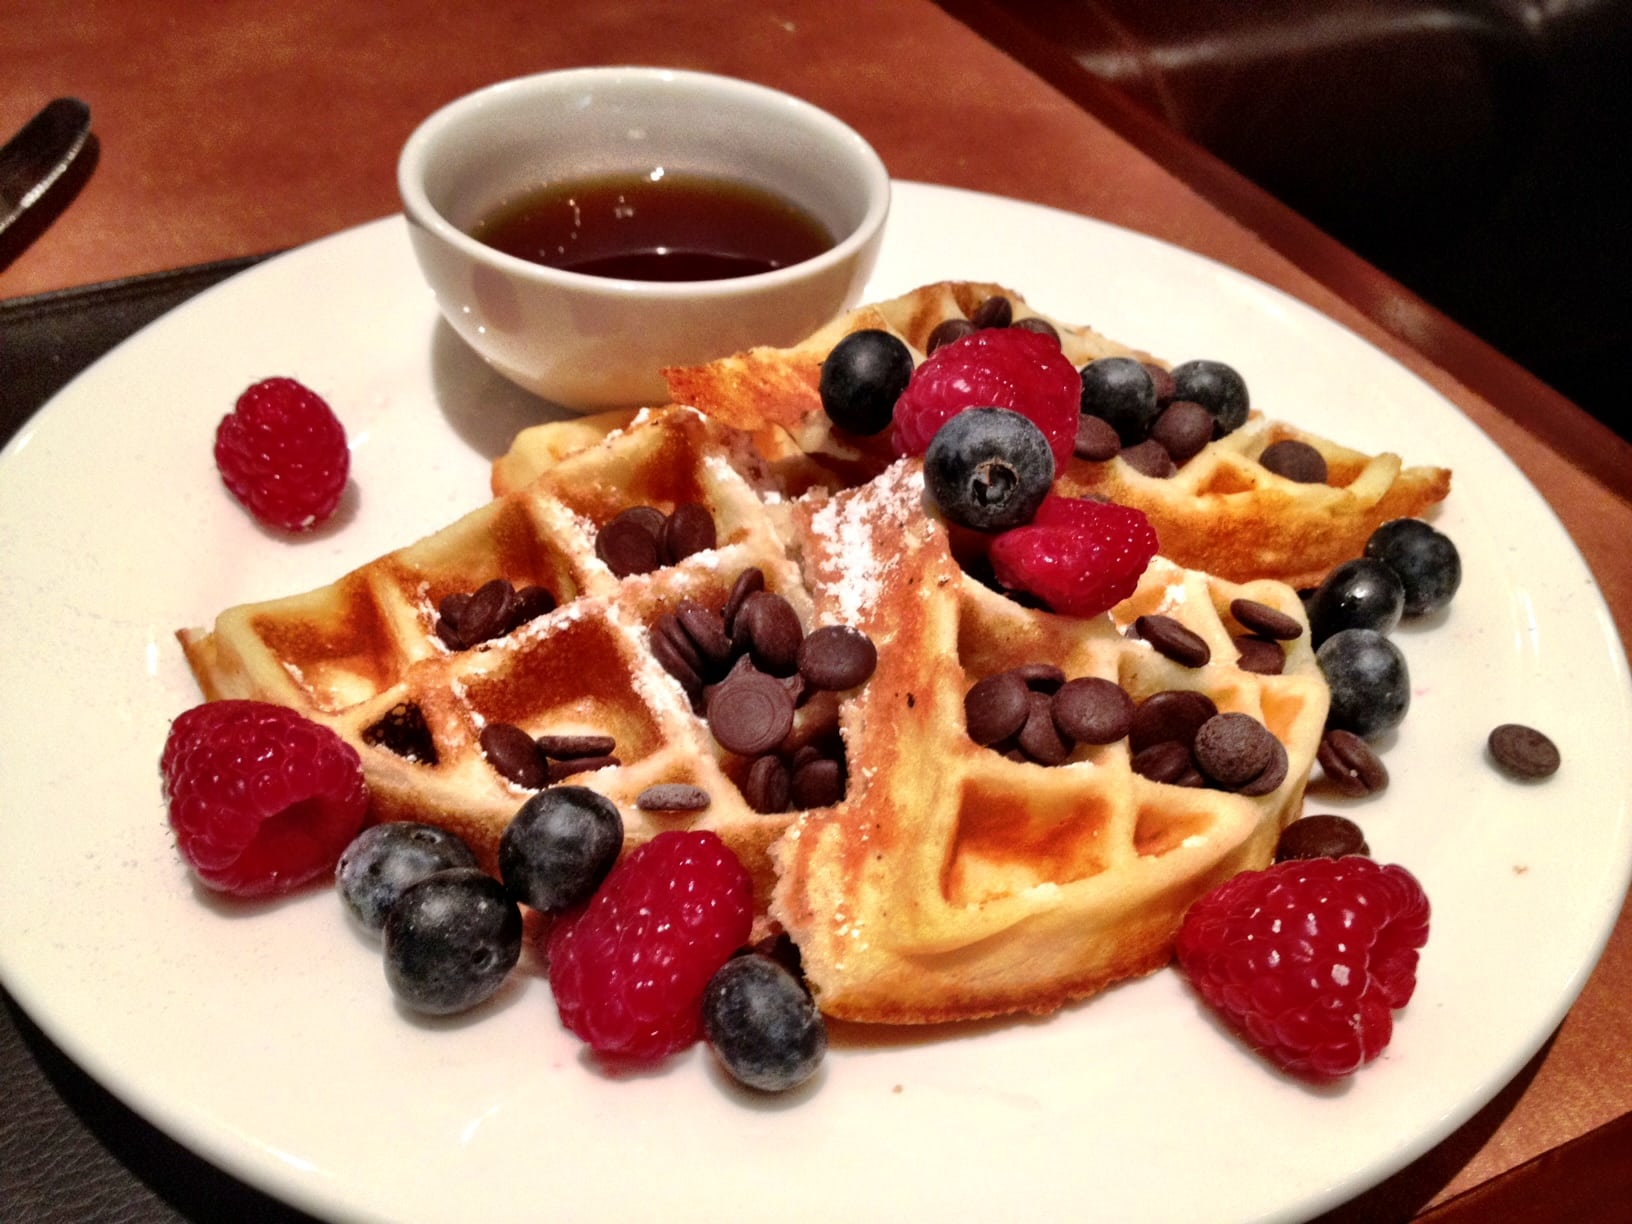 Best easter brunch spots in calgary thomsons restaurant hyatt thomsons calgary breakfast buffet negle Choice Image